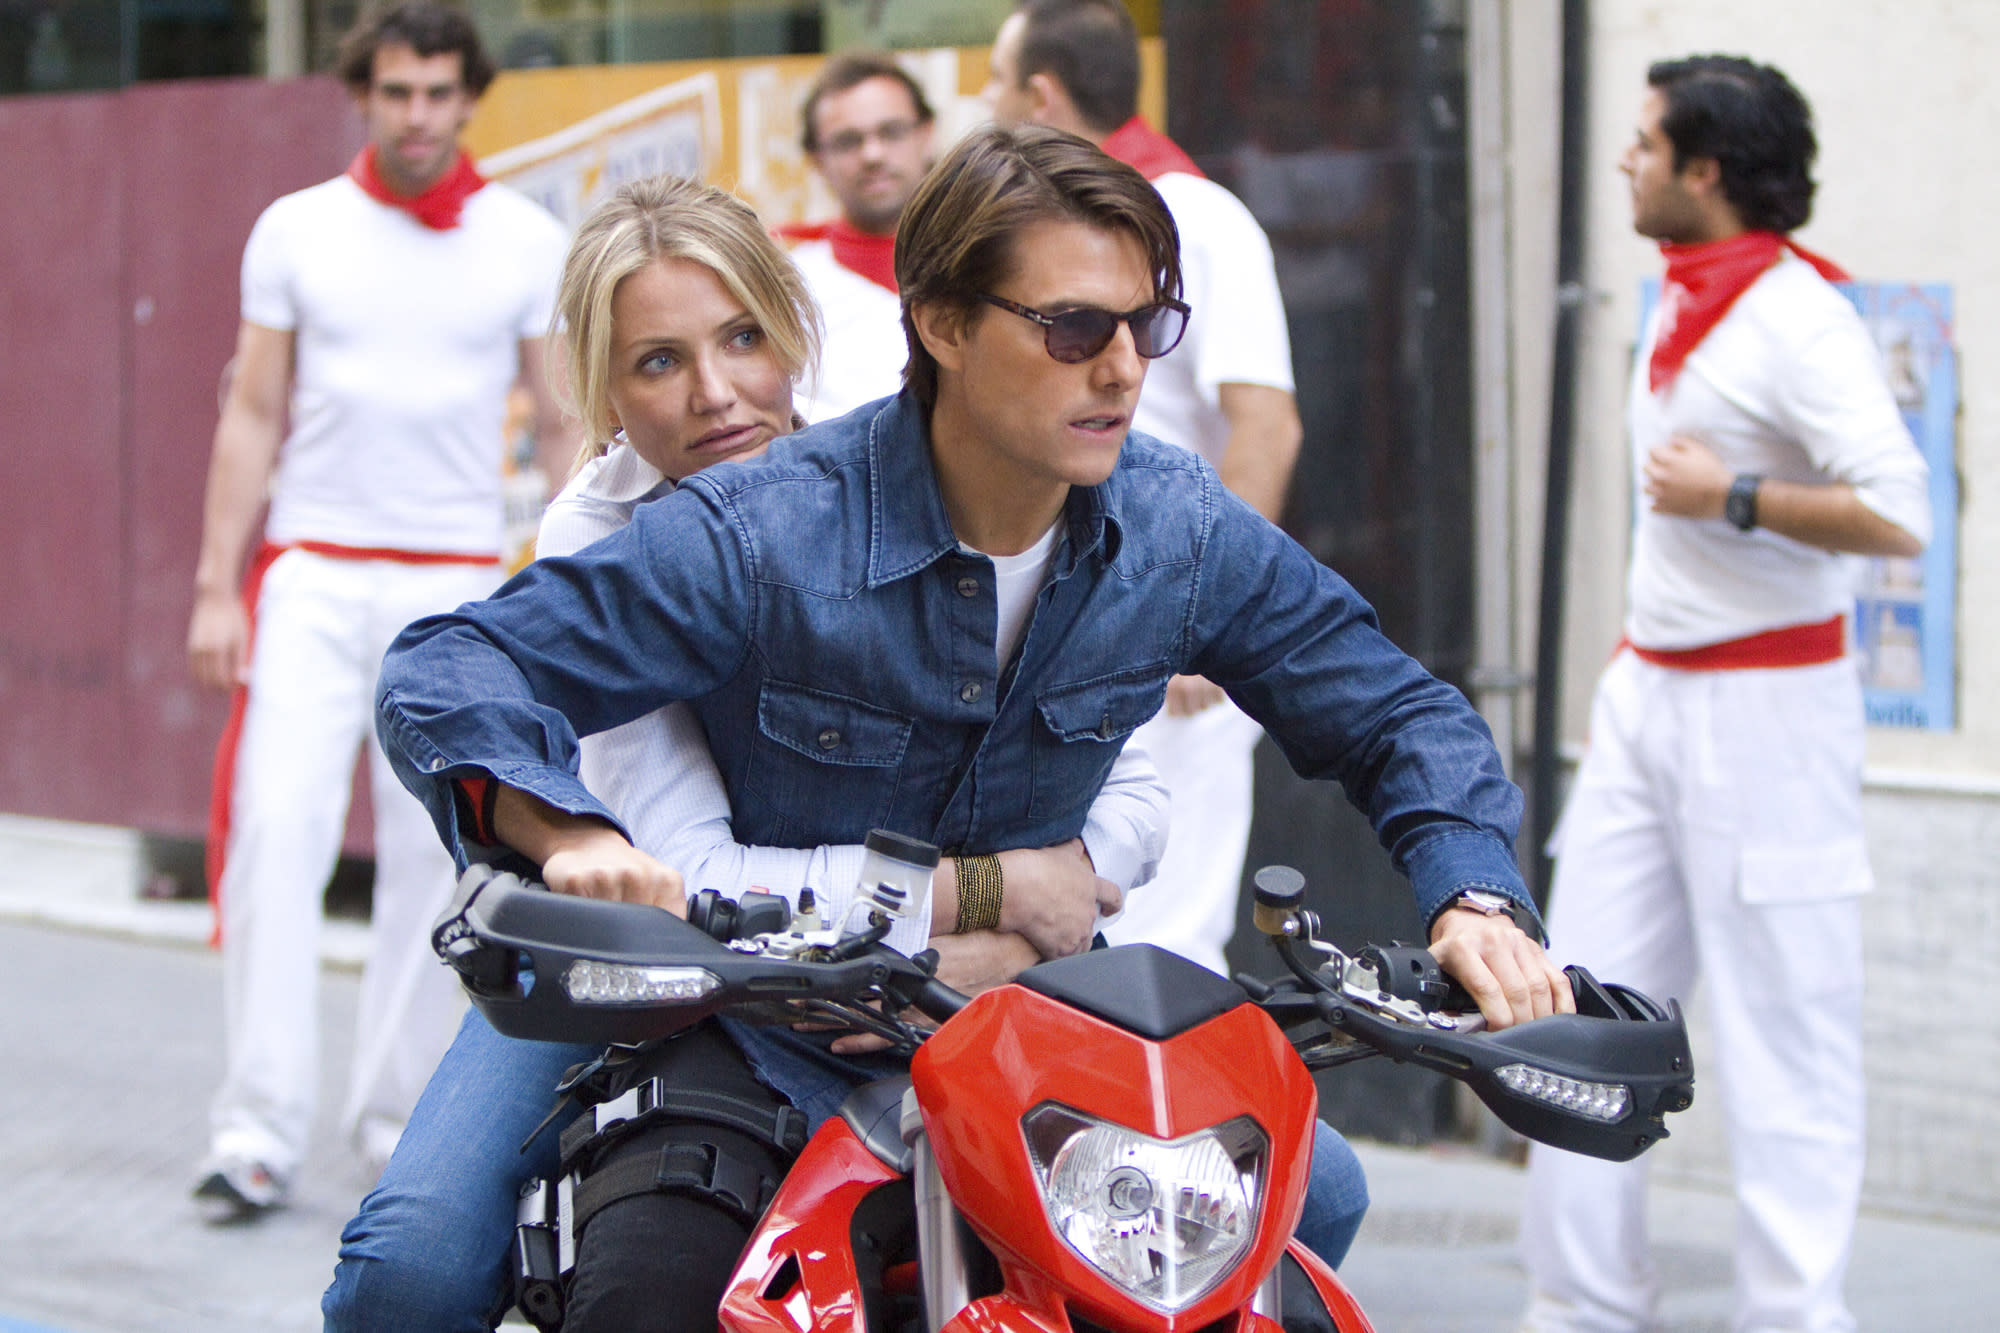 """<p>How do you secure the bottom position in these rankings? Well, having more than a dozen writers work on the script and then clocking in as the lowest leading man box office performance of Cruise's career is a good start. The combination of Cruise, <a href=""""https://ew.com/tag/cameron-diaz/"""" rel=""""nofollow noopener"""" target=""""_blank"""" data-ylk=""""slk:Cameron Diaz"""" class=""""link rapid-noclick-resp"""">Cameron Diaz</a>, and director <a href=""""https://ew.com/tag/james-mangold/"""" rel=""""nofollow noopener"""" target=""""_blank"""" data-ylk=""""slk:James Mangold"""" class=""""link rapid-noclick-resp"""">James Mangold</a> should have been a formidable trio, and instead this action comedy isn't funny, looks cheap, and Cruise's spy Roy Miller is nothing more than an even cheaper Ethan Hunt knockoff.</p> <p><b>Related: </b><a href=""""https://ew.com/article/2010/07/02/knight-and-day-behind-scenes/"""" rel=""""nofollow noopener"""" target=""""_blank"""" data-ylk=""""slk:Behind the scenes of Knight and Day"""" class=""""link rapid-noclick-resp"""">Behind the scenes of <i>Knight and Day</i></a></p>"""